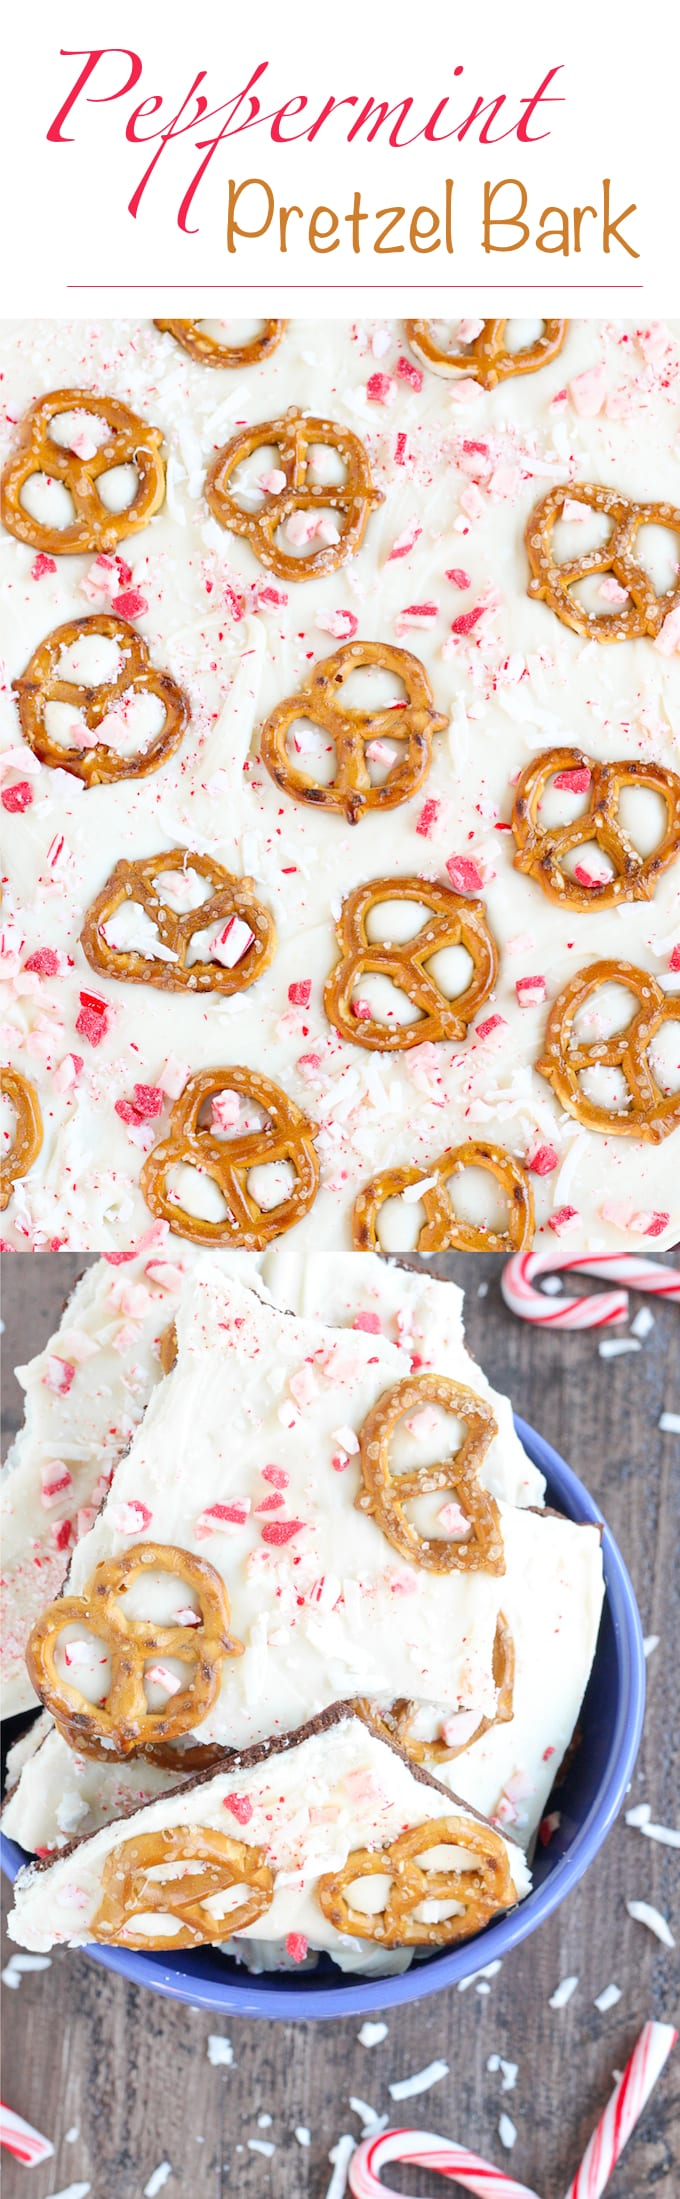 """This easy Coconut Peppermint Pretzel Bark is a minty mix of white and dark chocolate with candy cane """"snow"""", salty pretzels and a hint of coconut! You will love the holiday mint flavor!"""